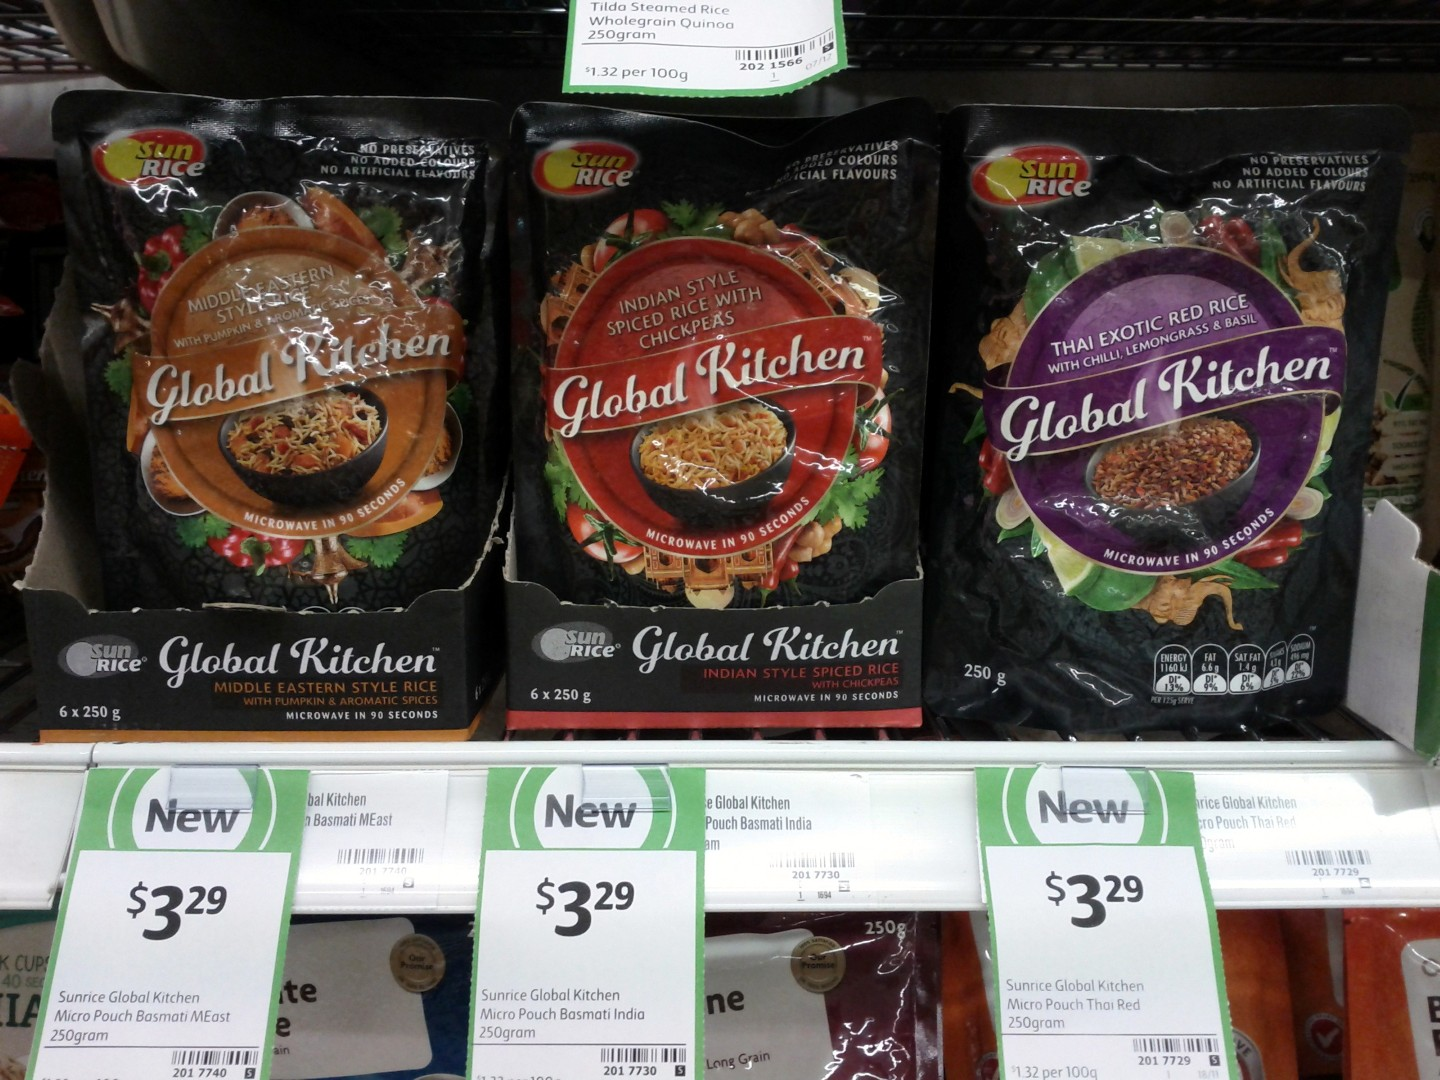 Sun Rice 250g Global Kitchen Middle Eastern, Indian, Thai Exotic